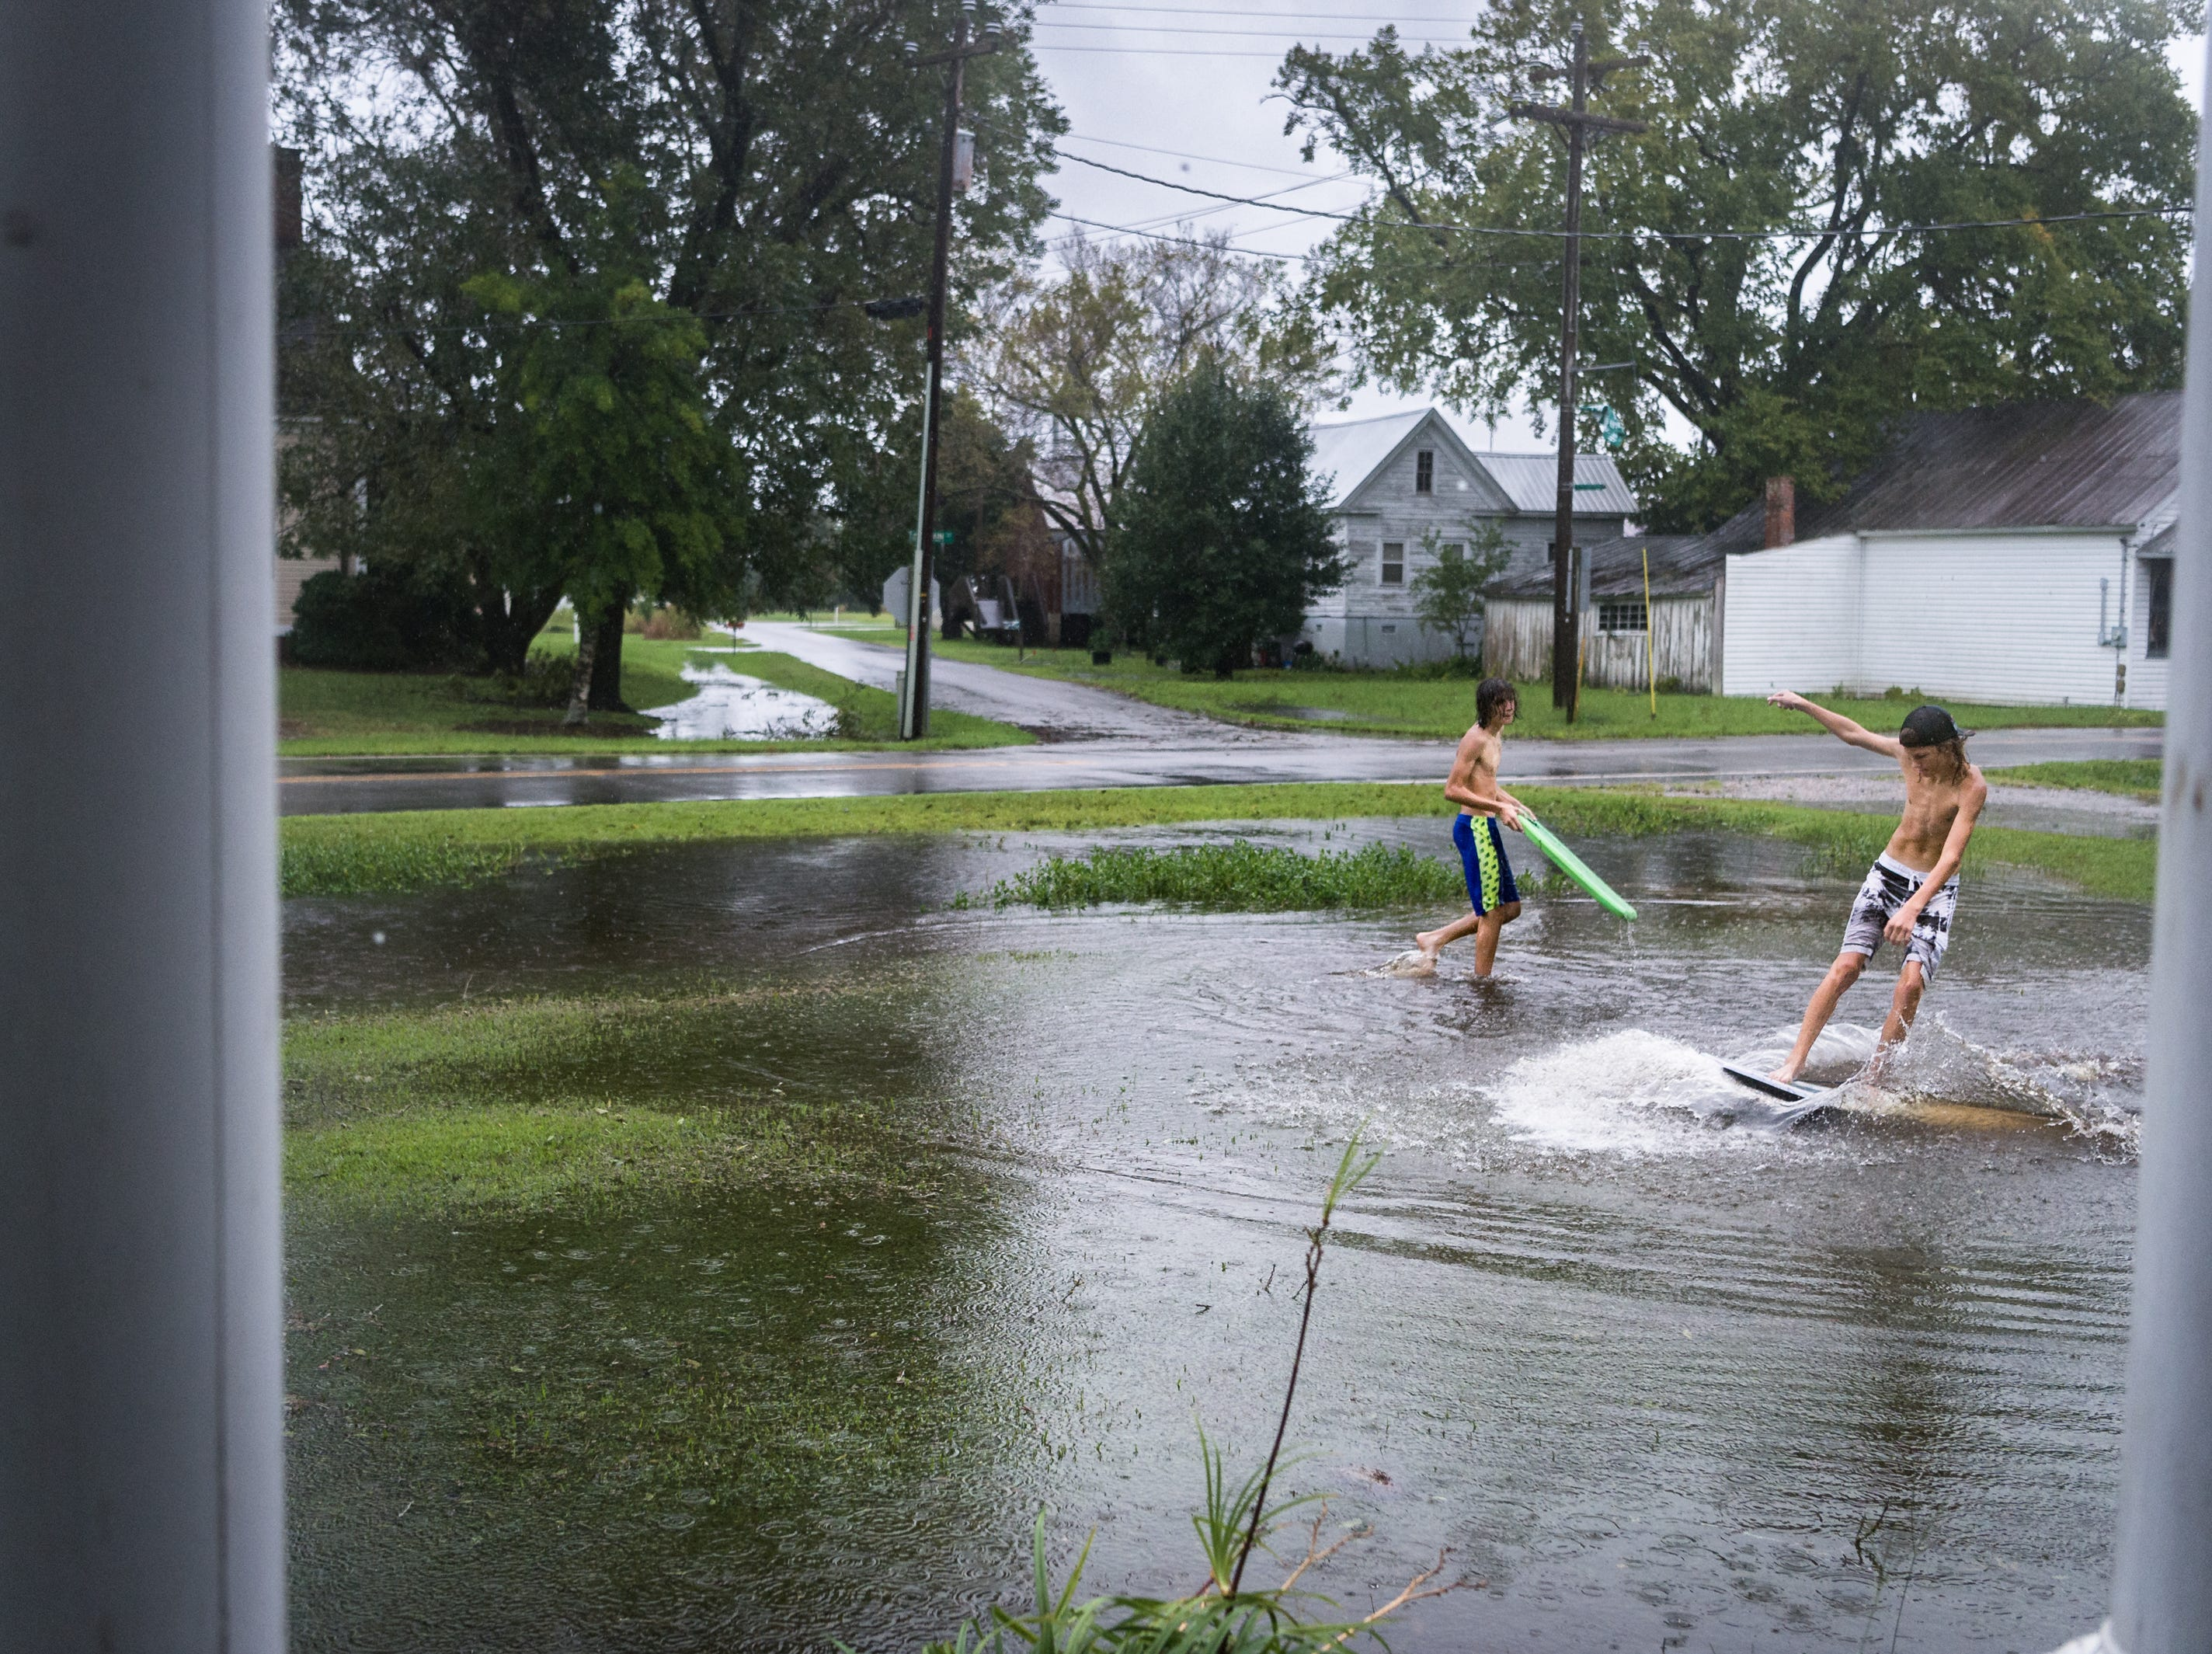 Fortino Beltran, 14 and Deacon Etheredge, also 14, surf on a large puddle in a front yard on Main Street in Swan Quarter, N.C Sept. 14, 2018, after Hurricane Florence made landfall.